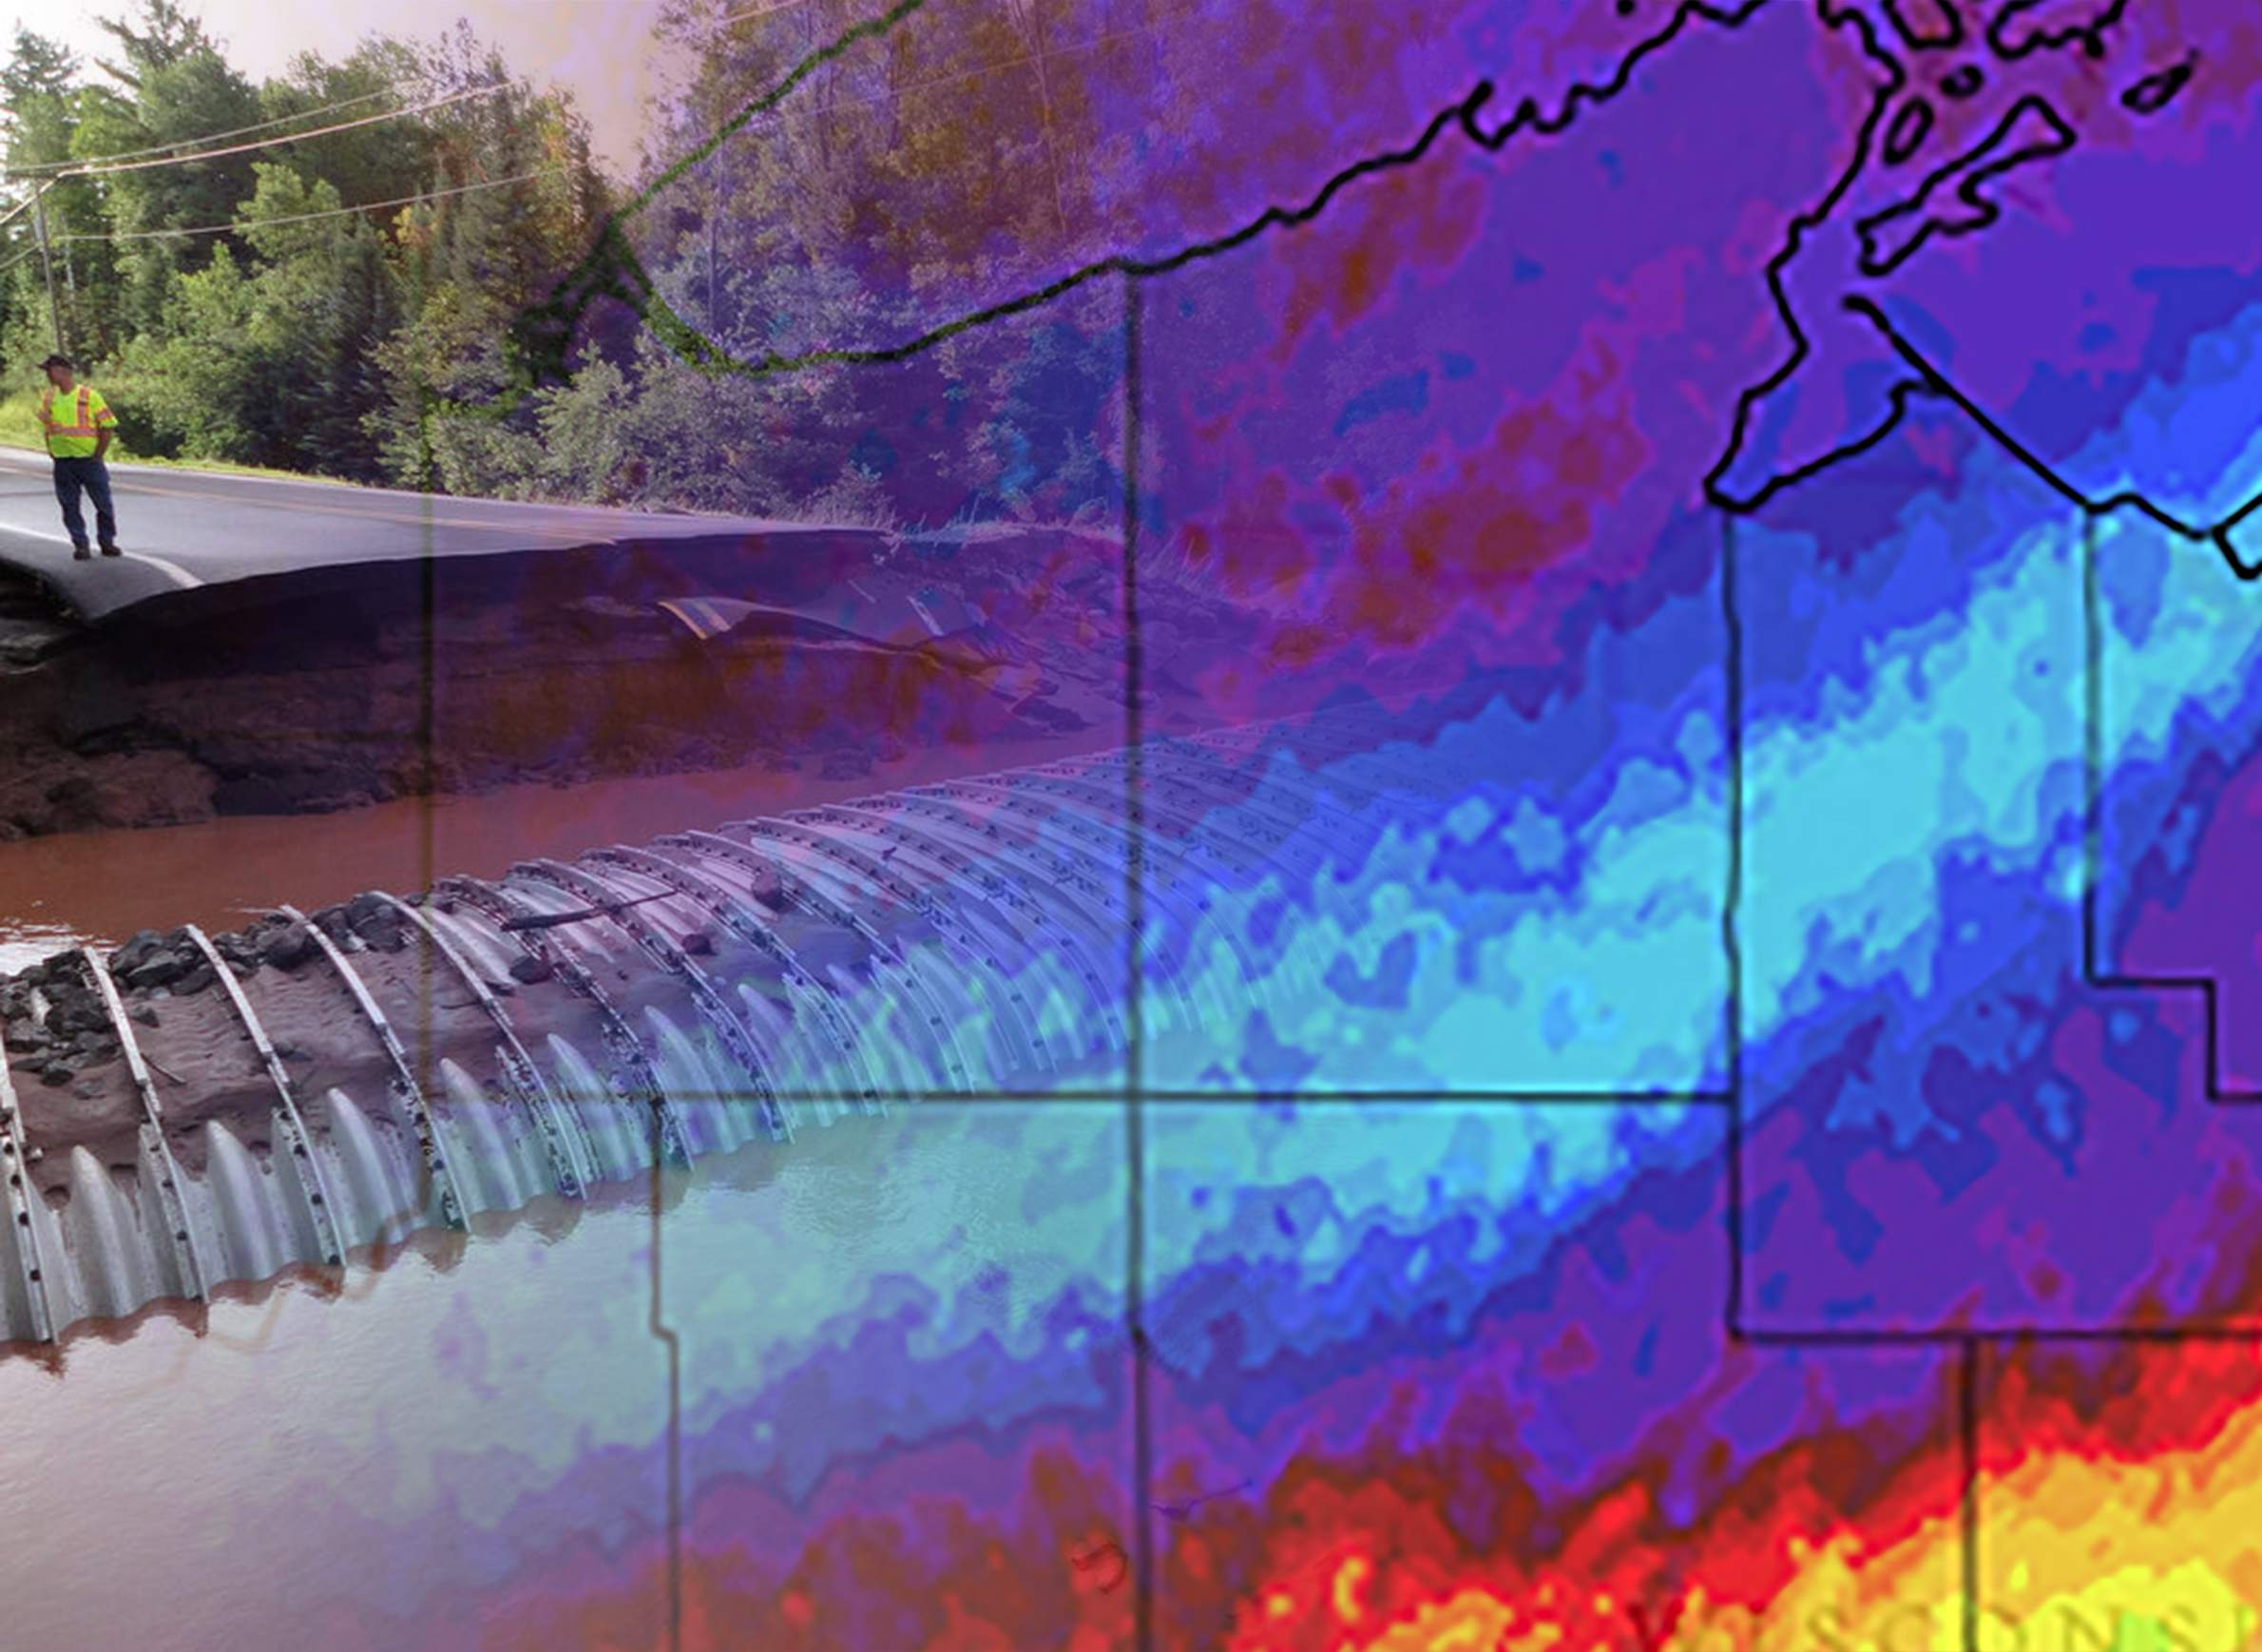 science-climate-flooding-money-infrastructure-costs-culvert-radar-illustration